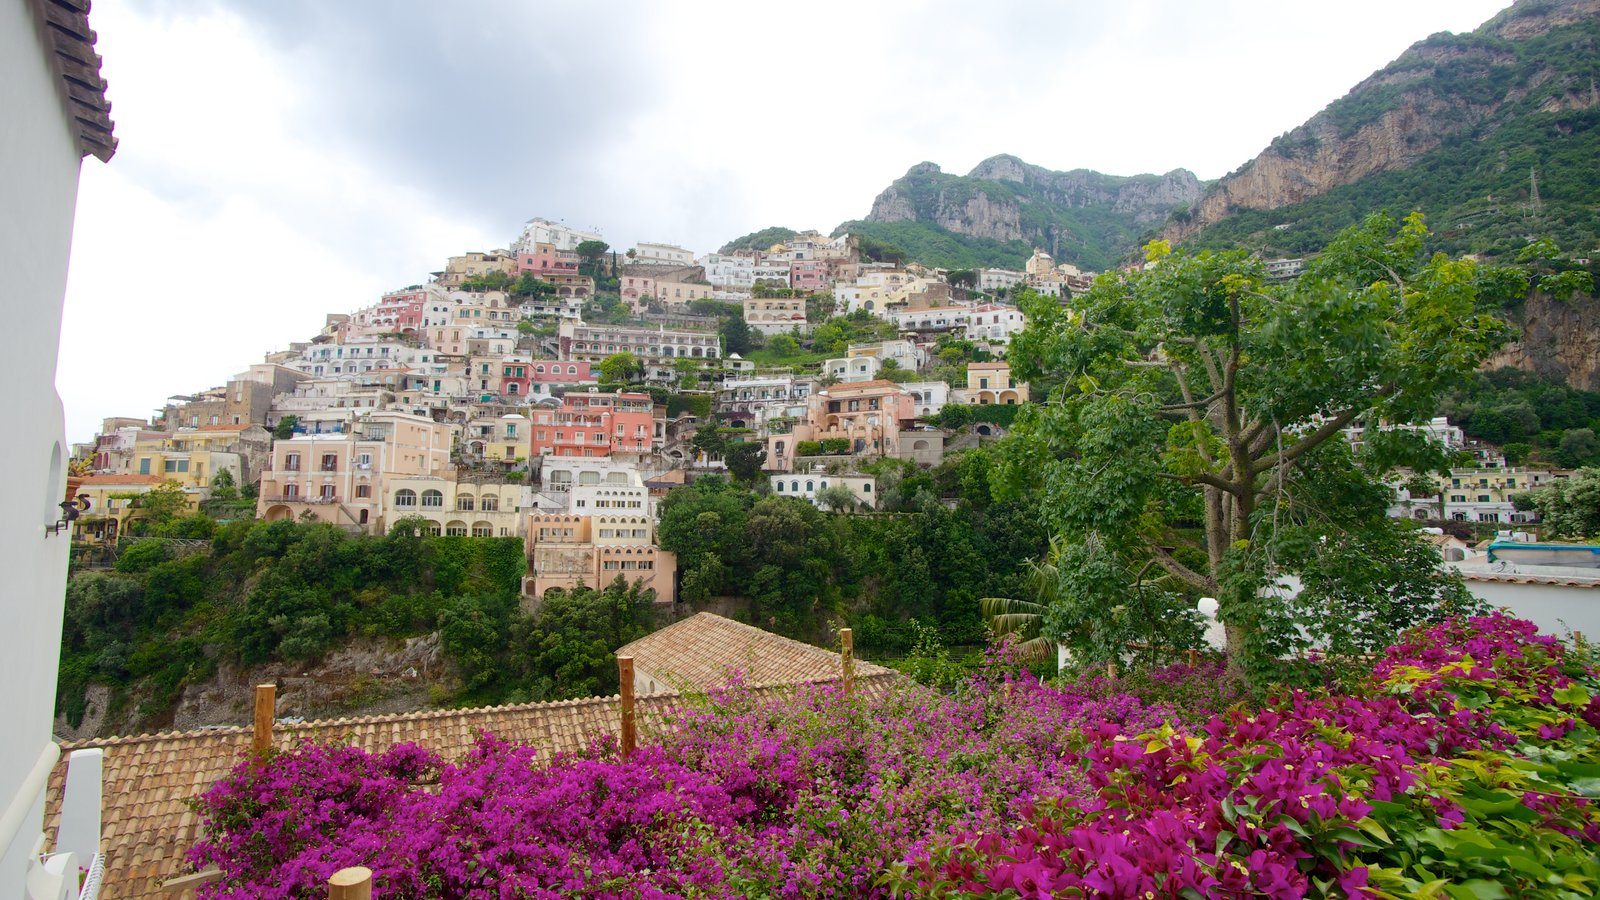 Positano showing a city and flowers